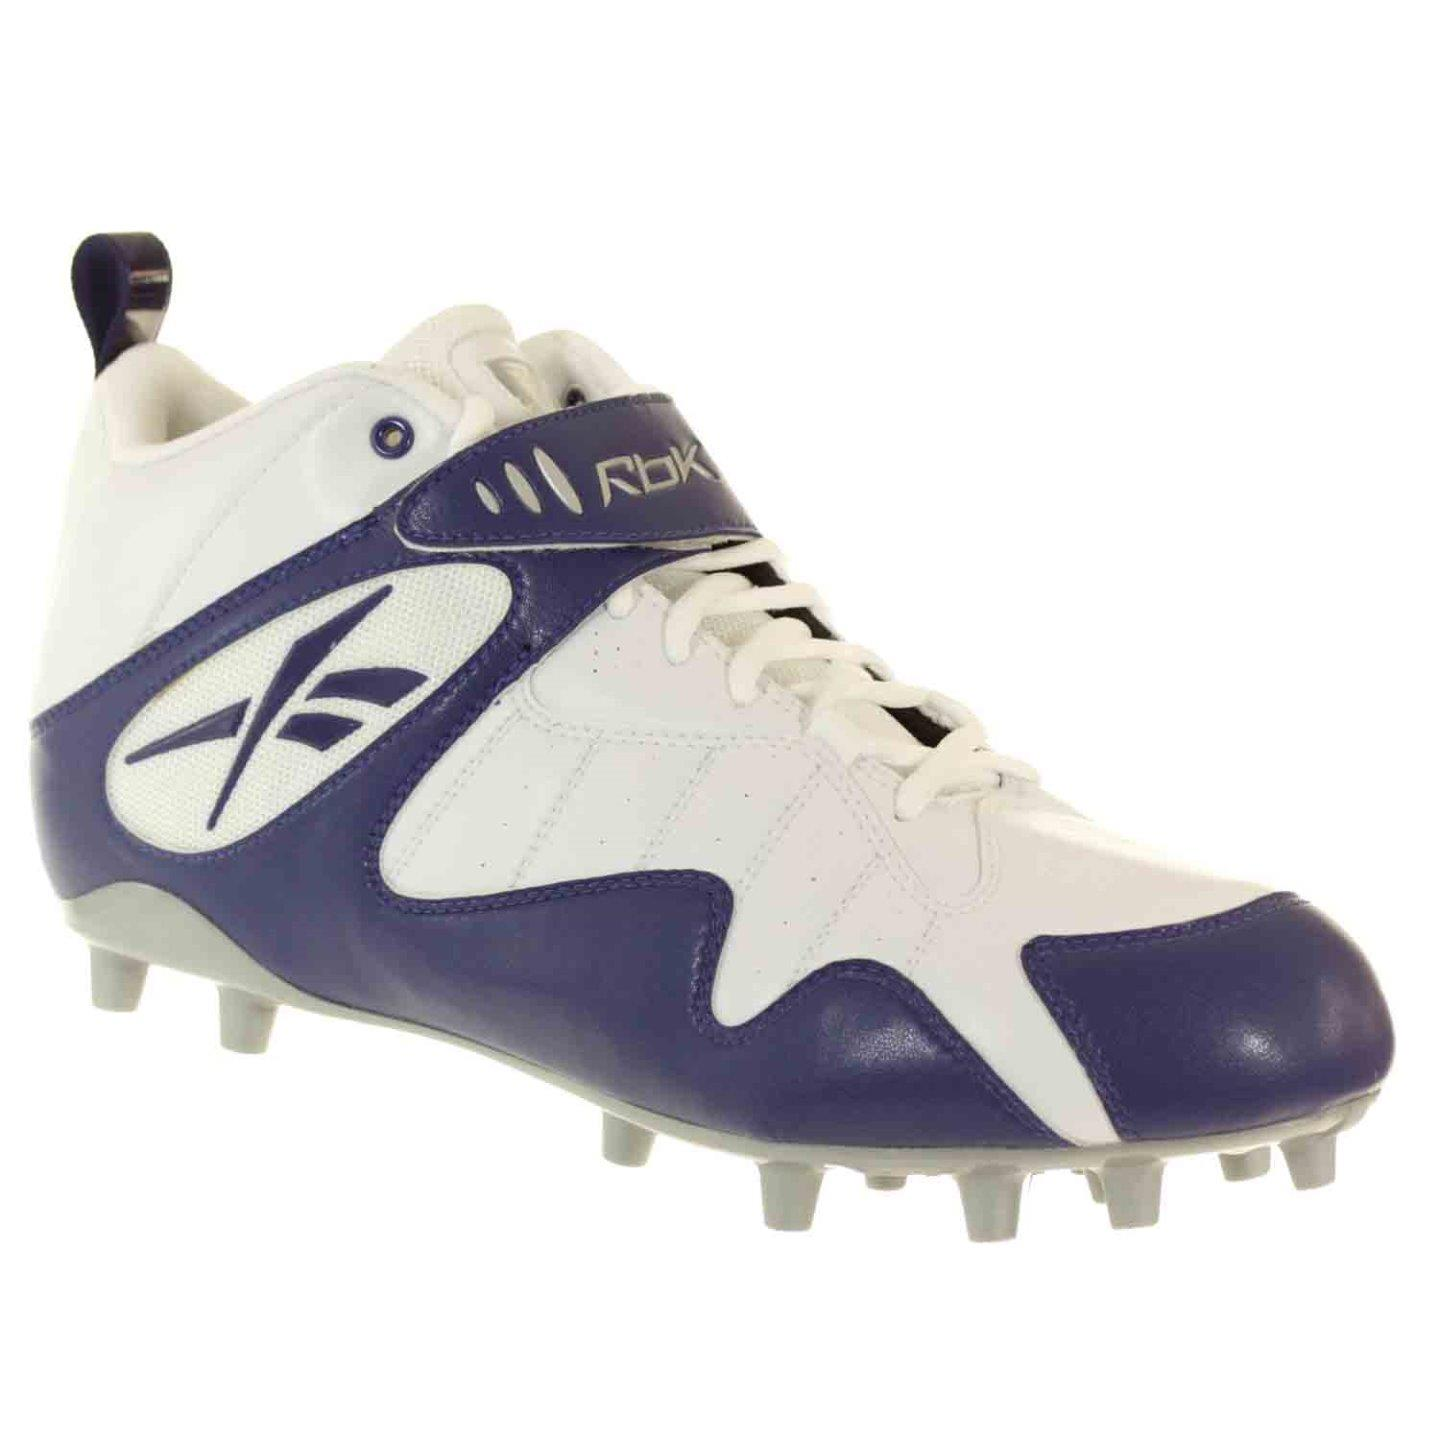 REEBOK PRO ALL OUT ONE MID MP MENS FOOTBALL CLEATS WHITE DARK ROYAL 10.5